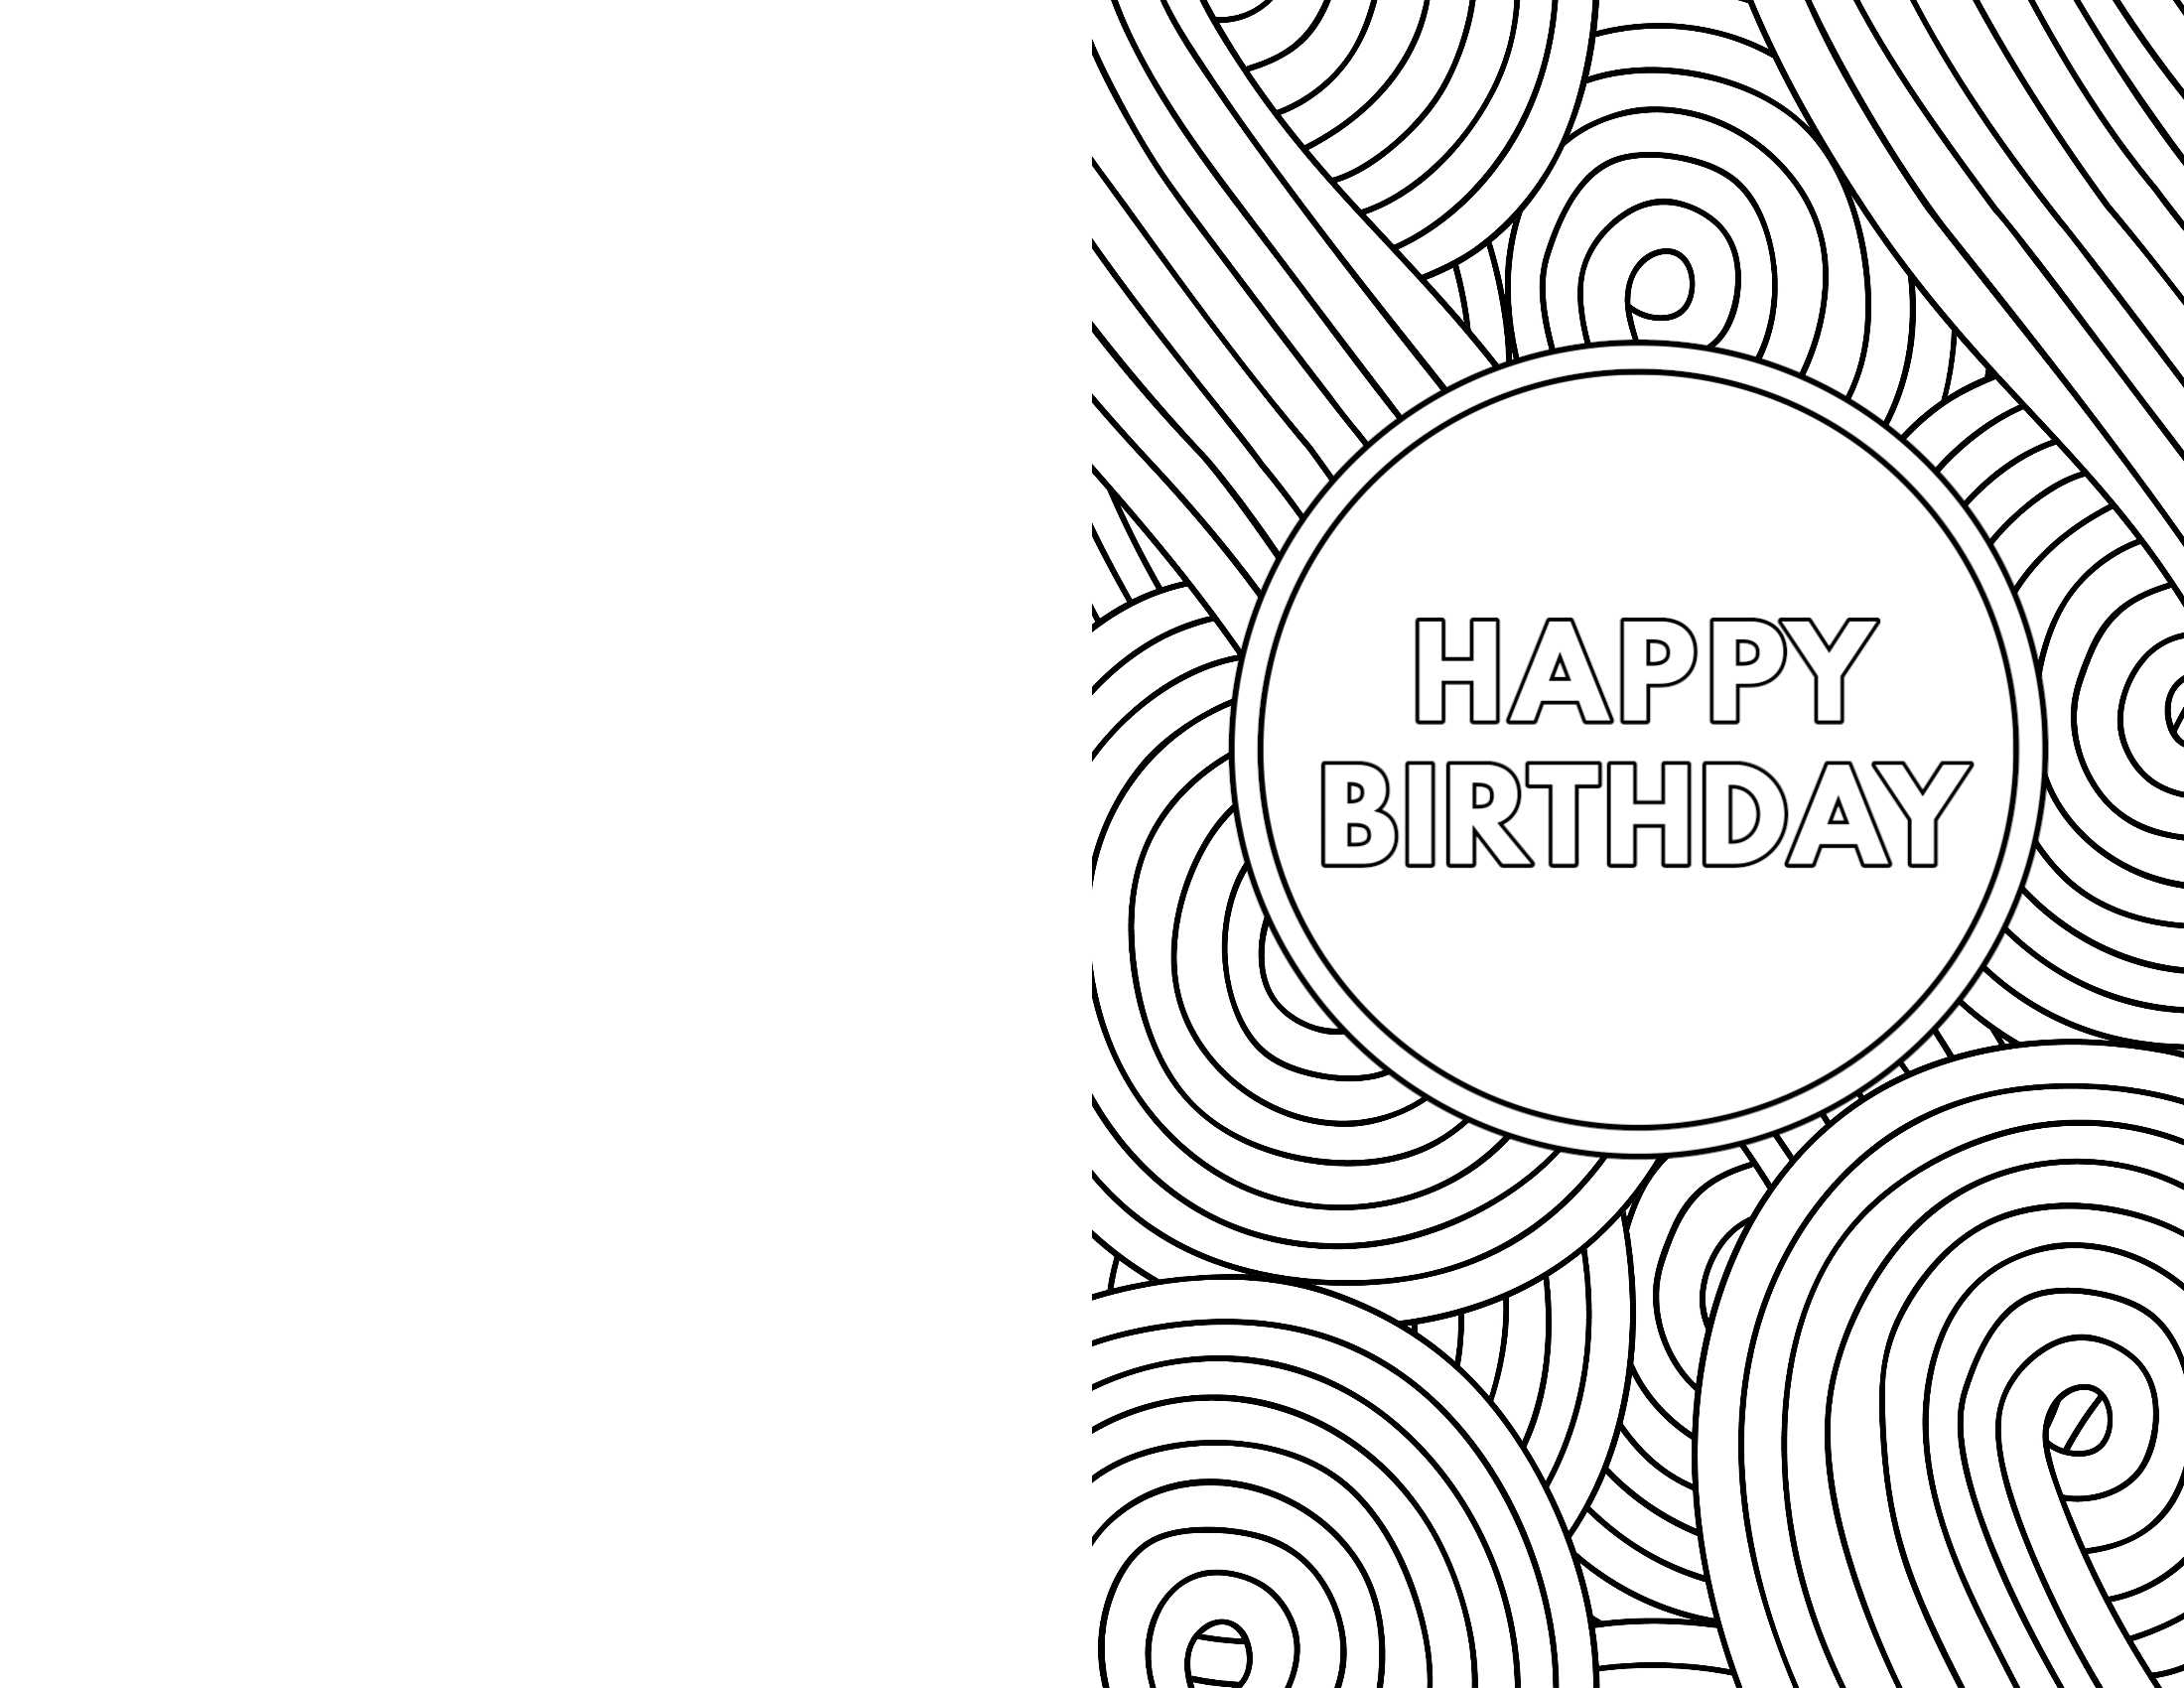 Foldable Printable Birthday Cards For Kids In Foldable Birthday Card Template